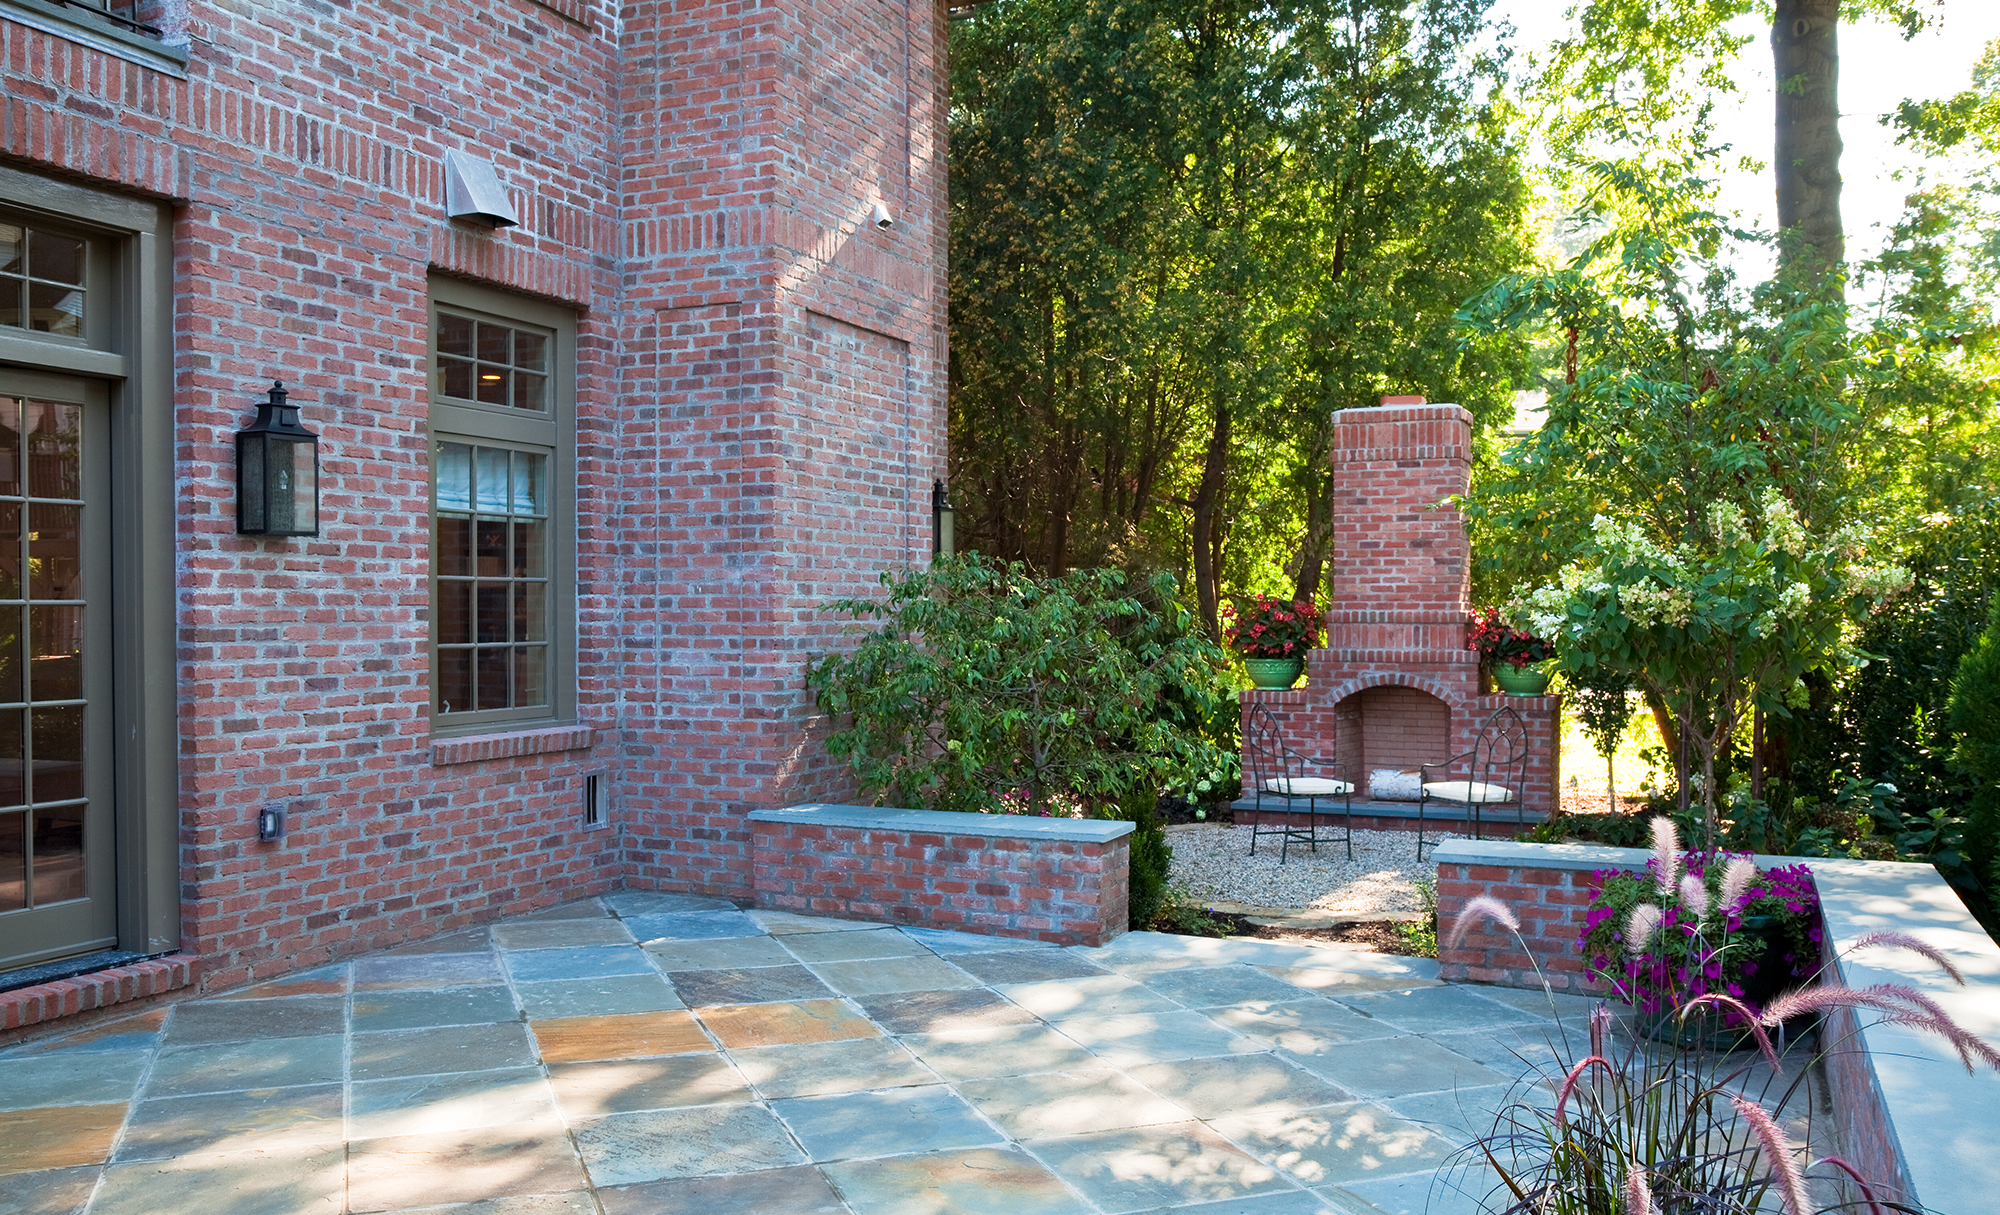 Patio with a Brick Fire Place